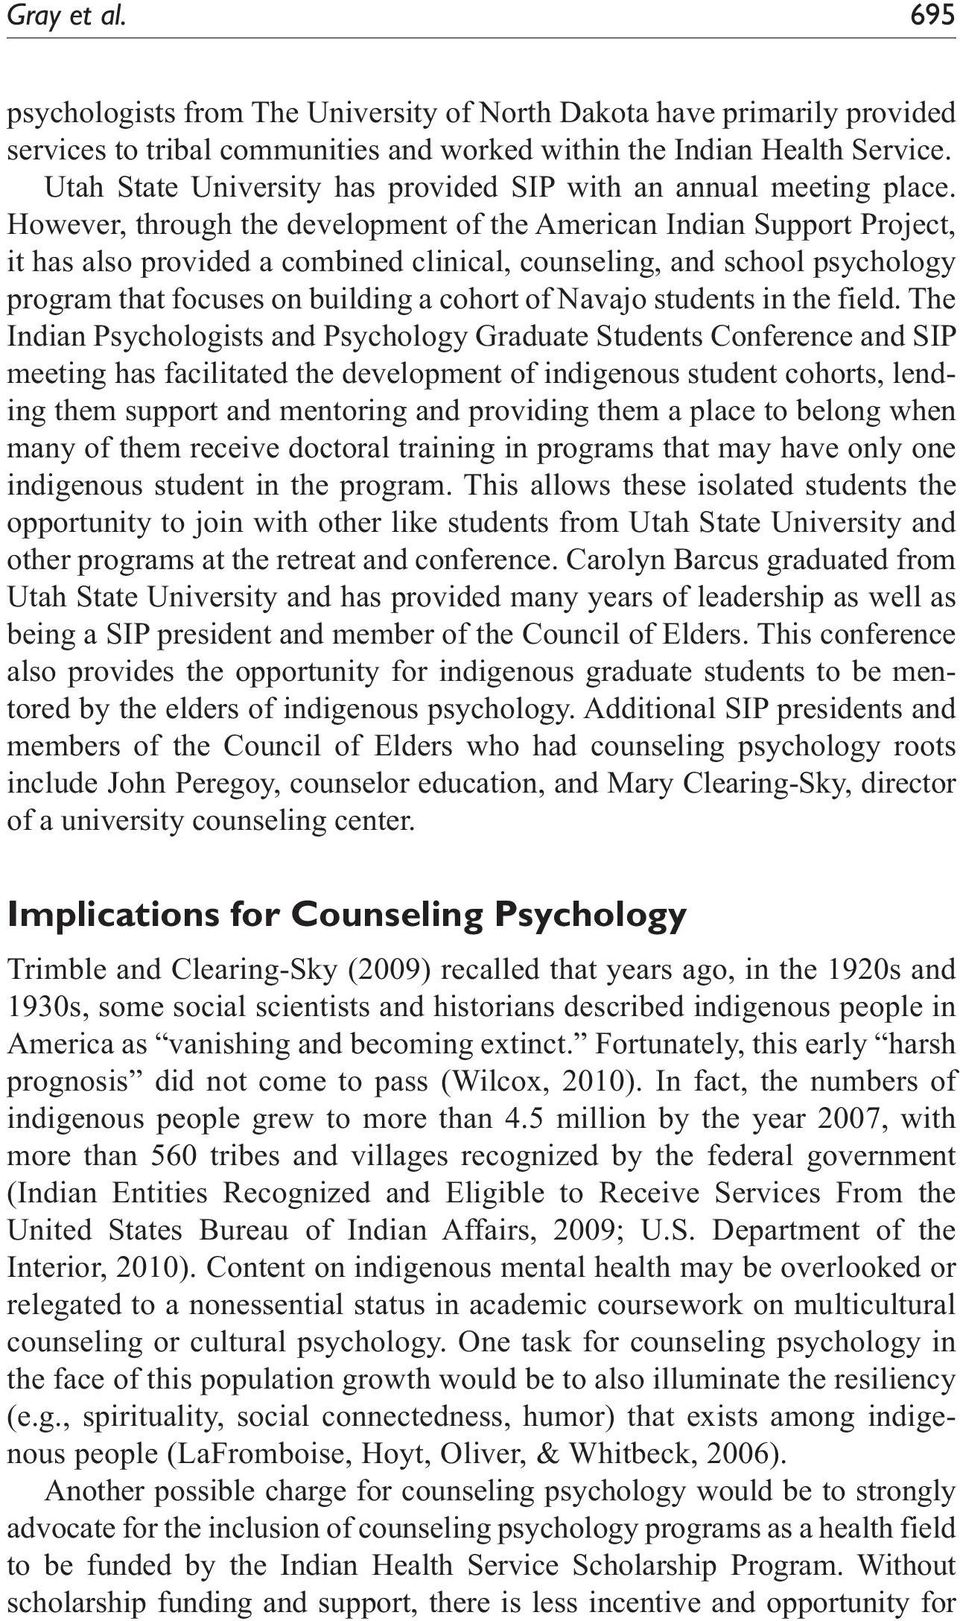 However, through the development of the American Indian Support Project, it has also provided a combined clinical, counseling, and school psychology program that focuses on building a cohort of